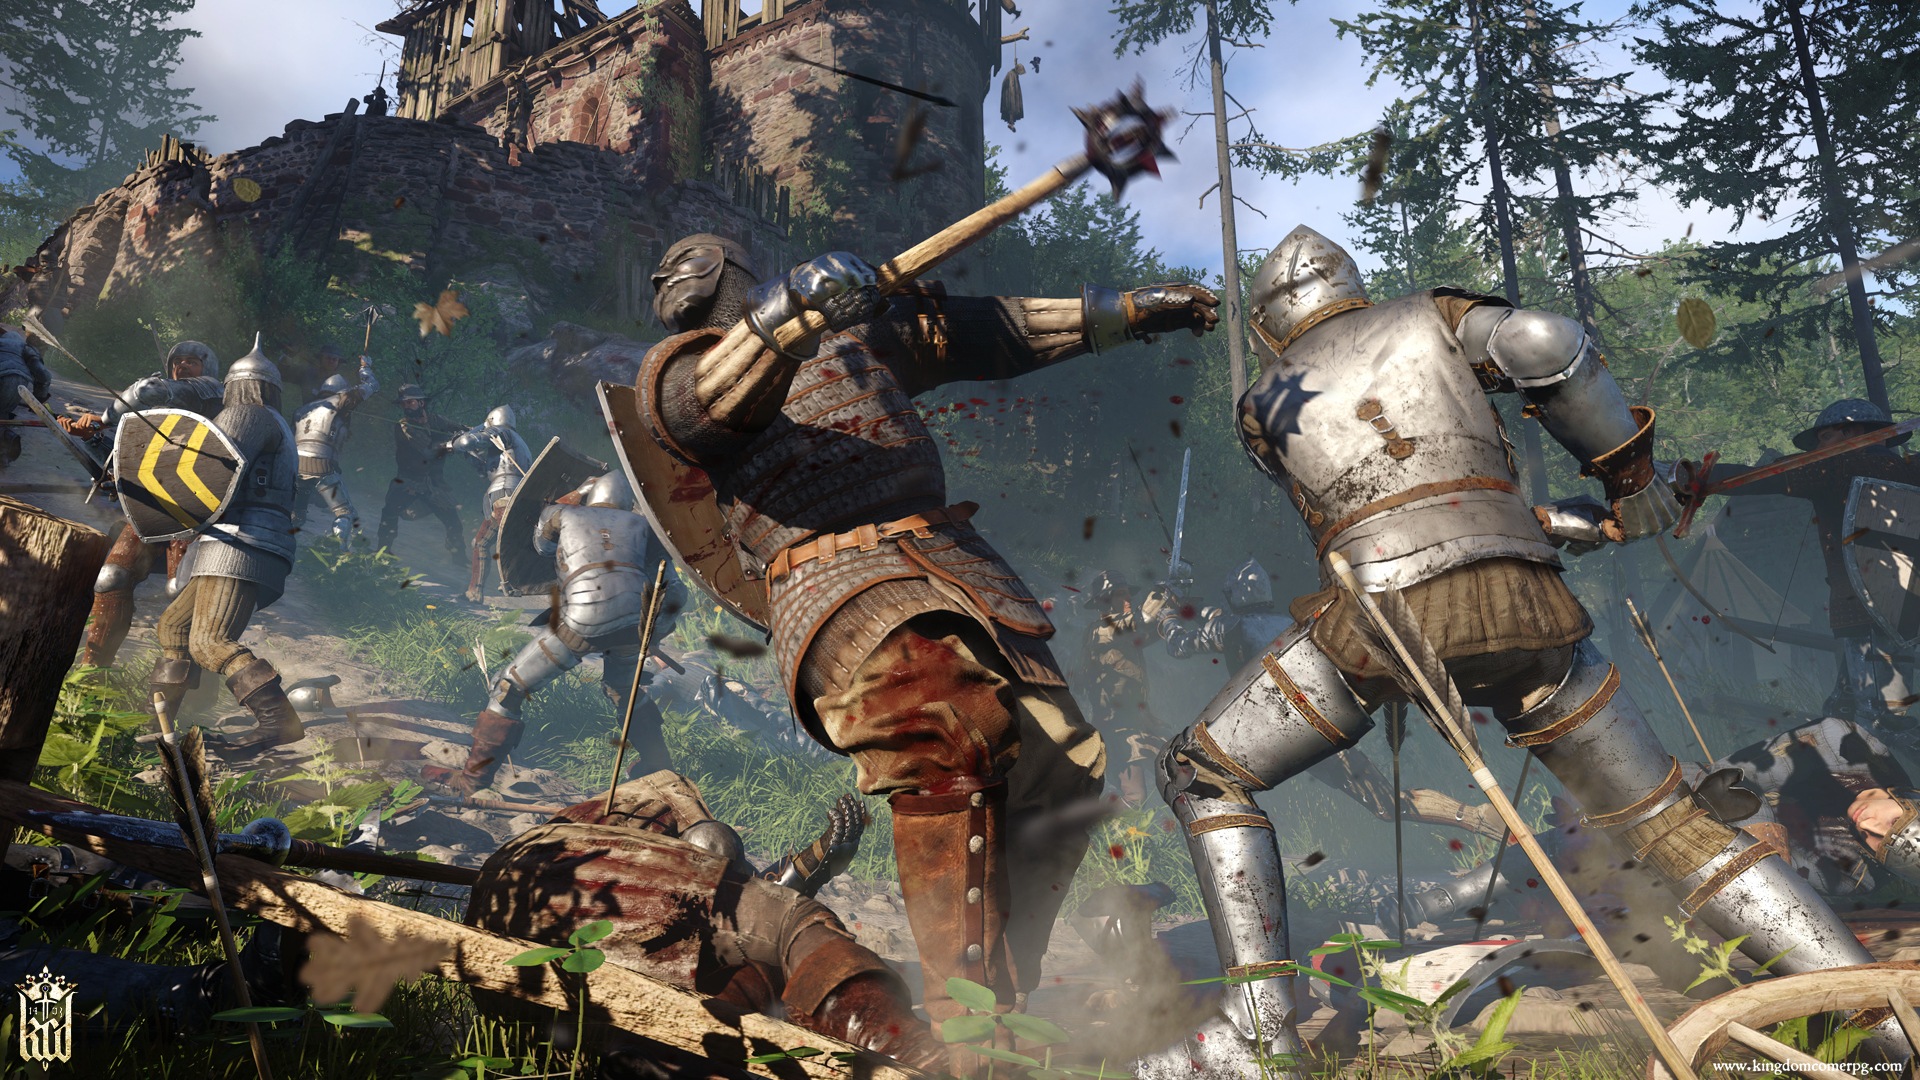 Top 5 games coming to Xbox One next week include Kingdom Come: Deliverance and Dynasty Warriors 9